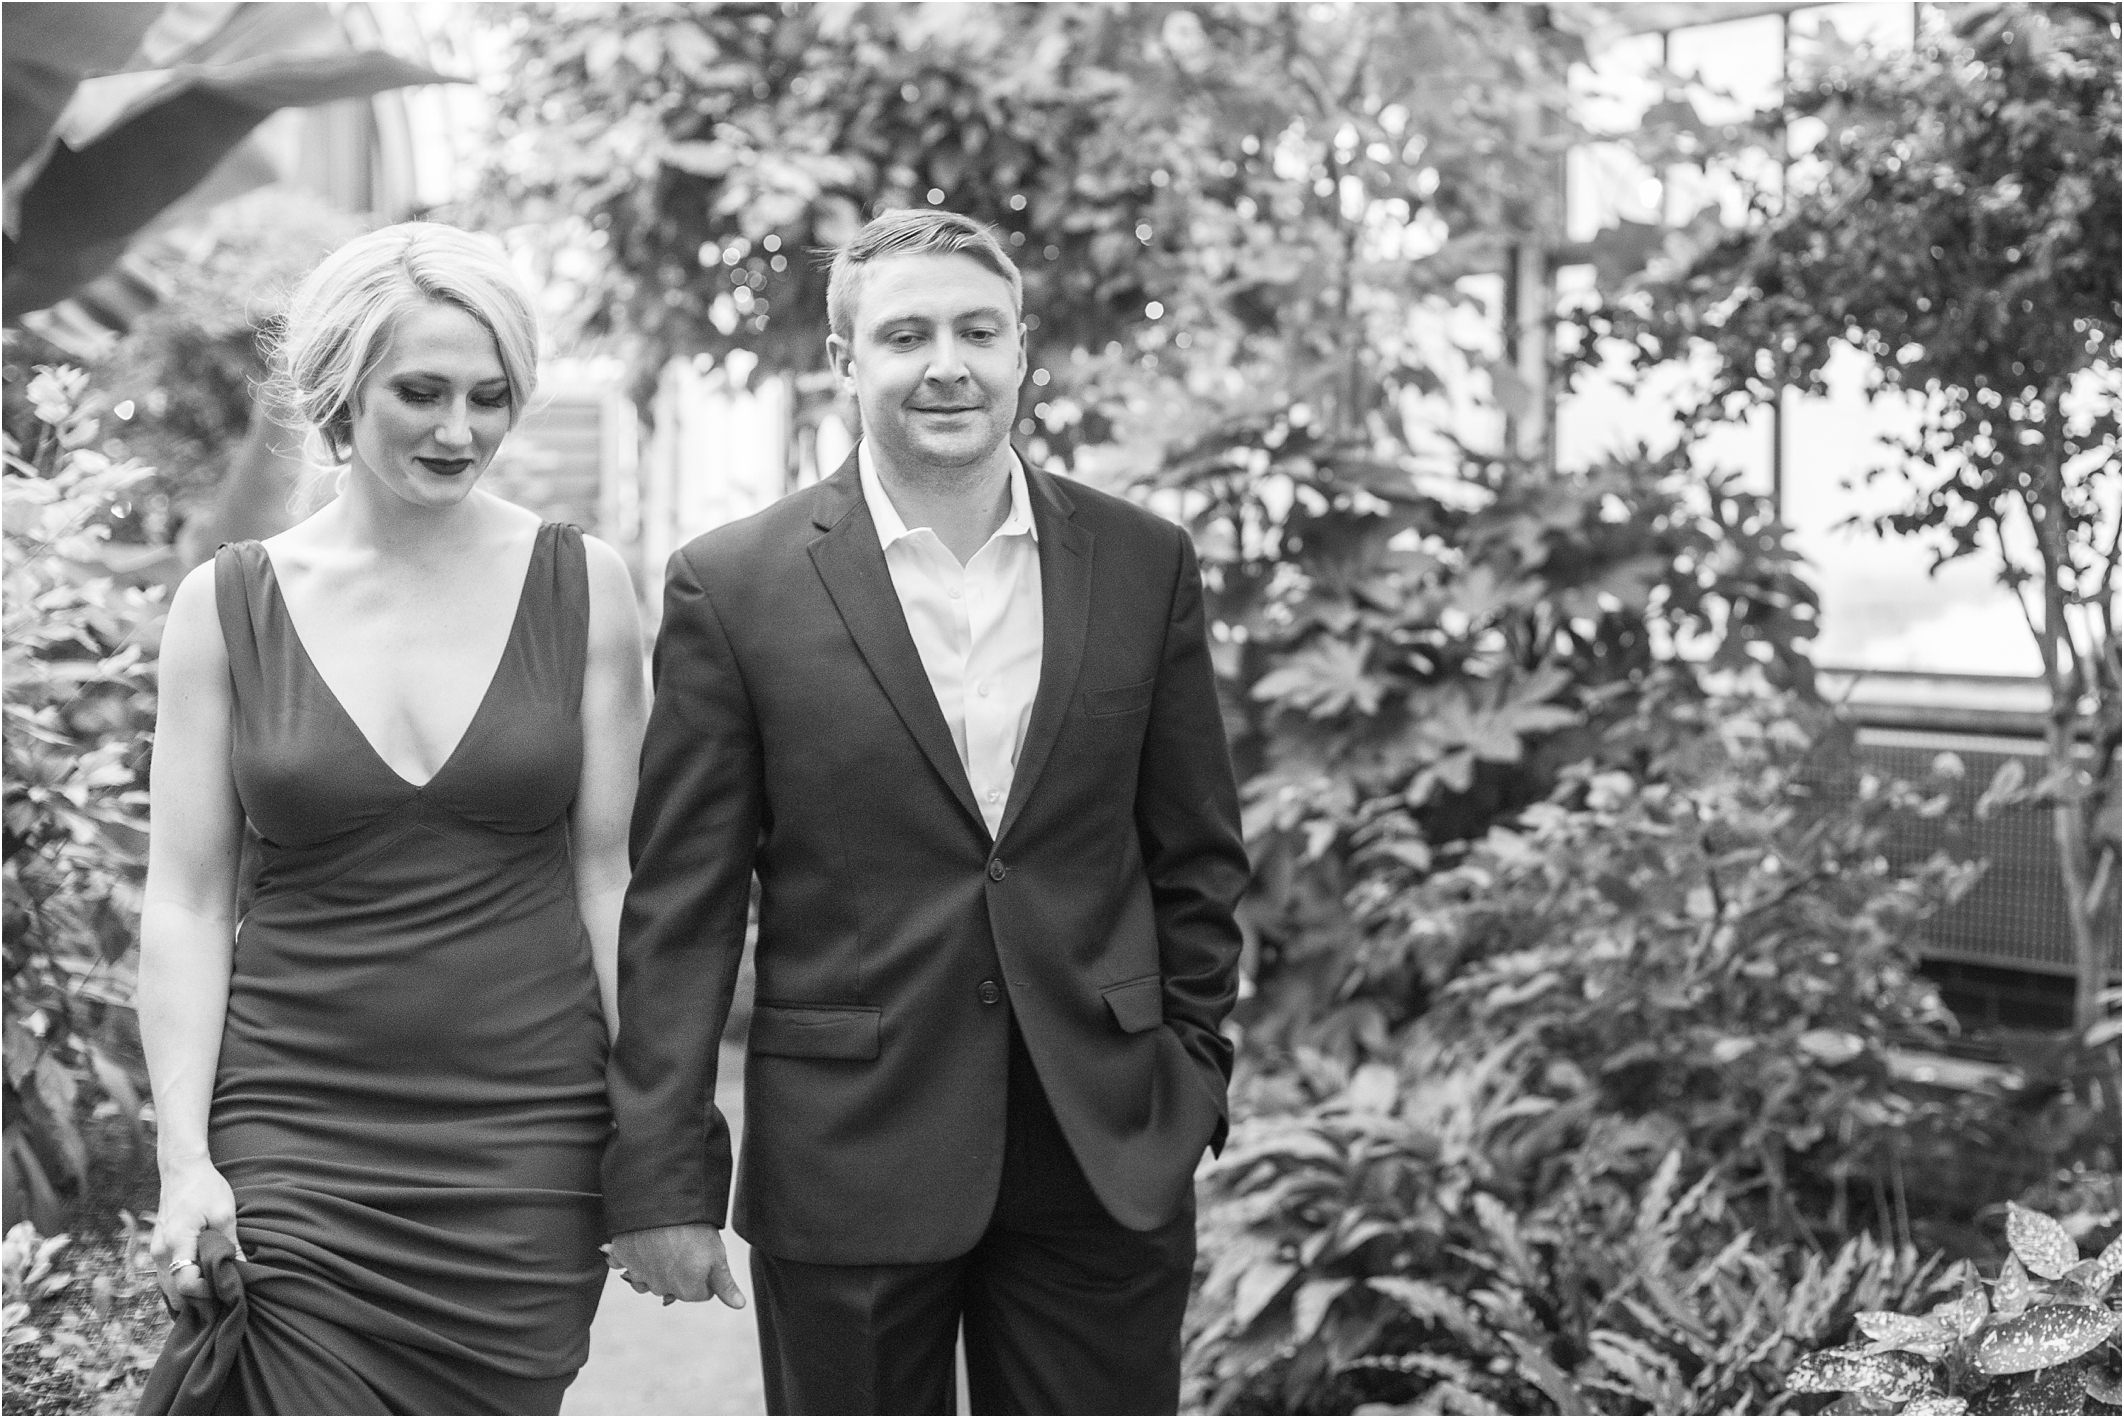 elegant-classic-belle-isle-conservatory-engagement-photos-in-detroit-mi-by-courtney-carolyn-photography_0016.jpg